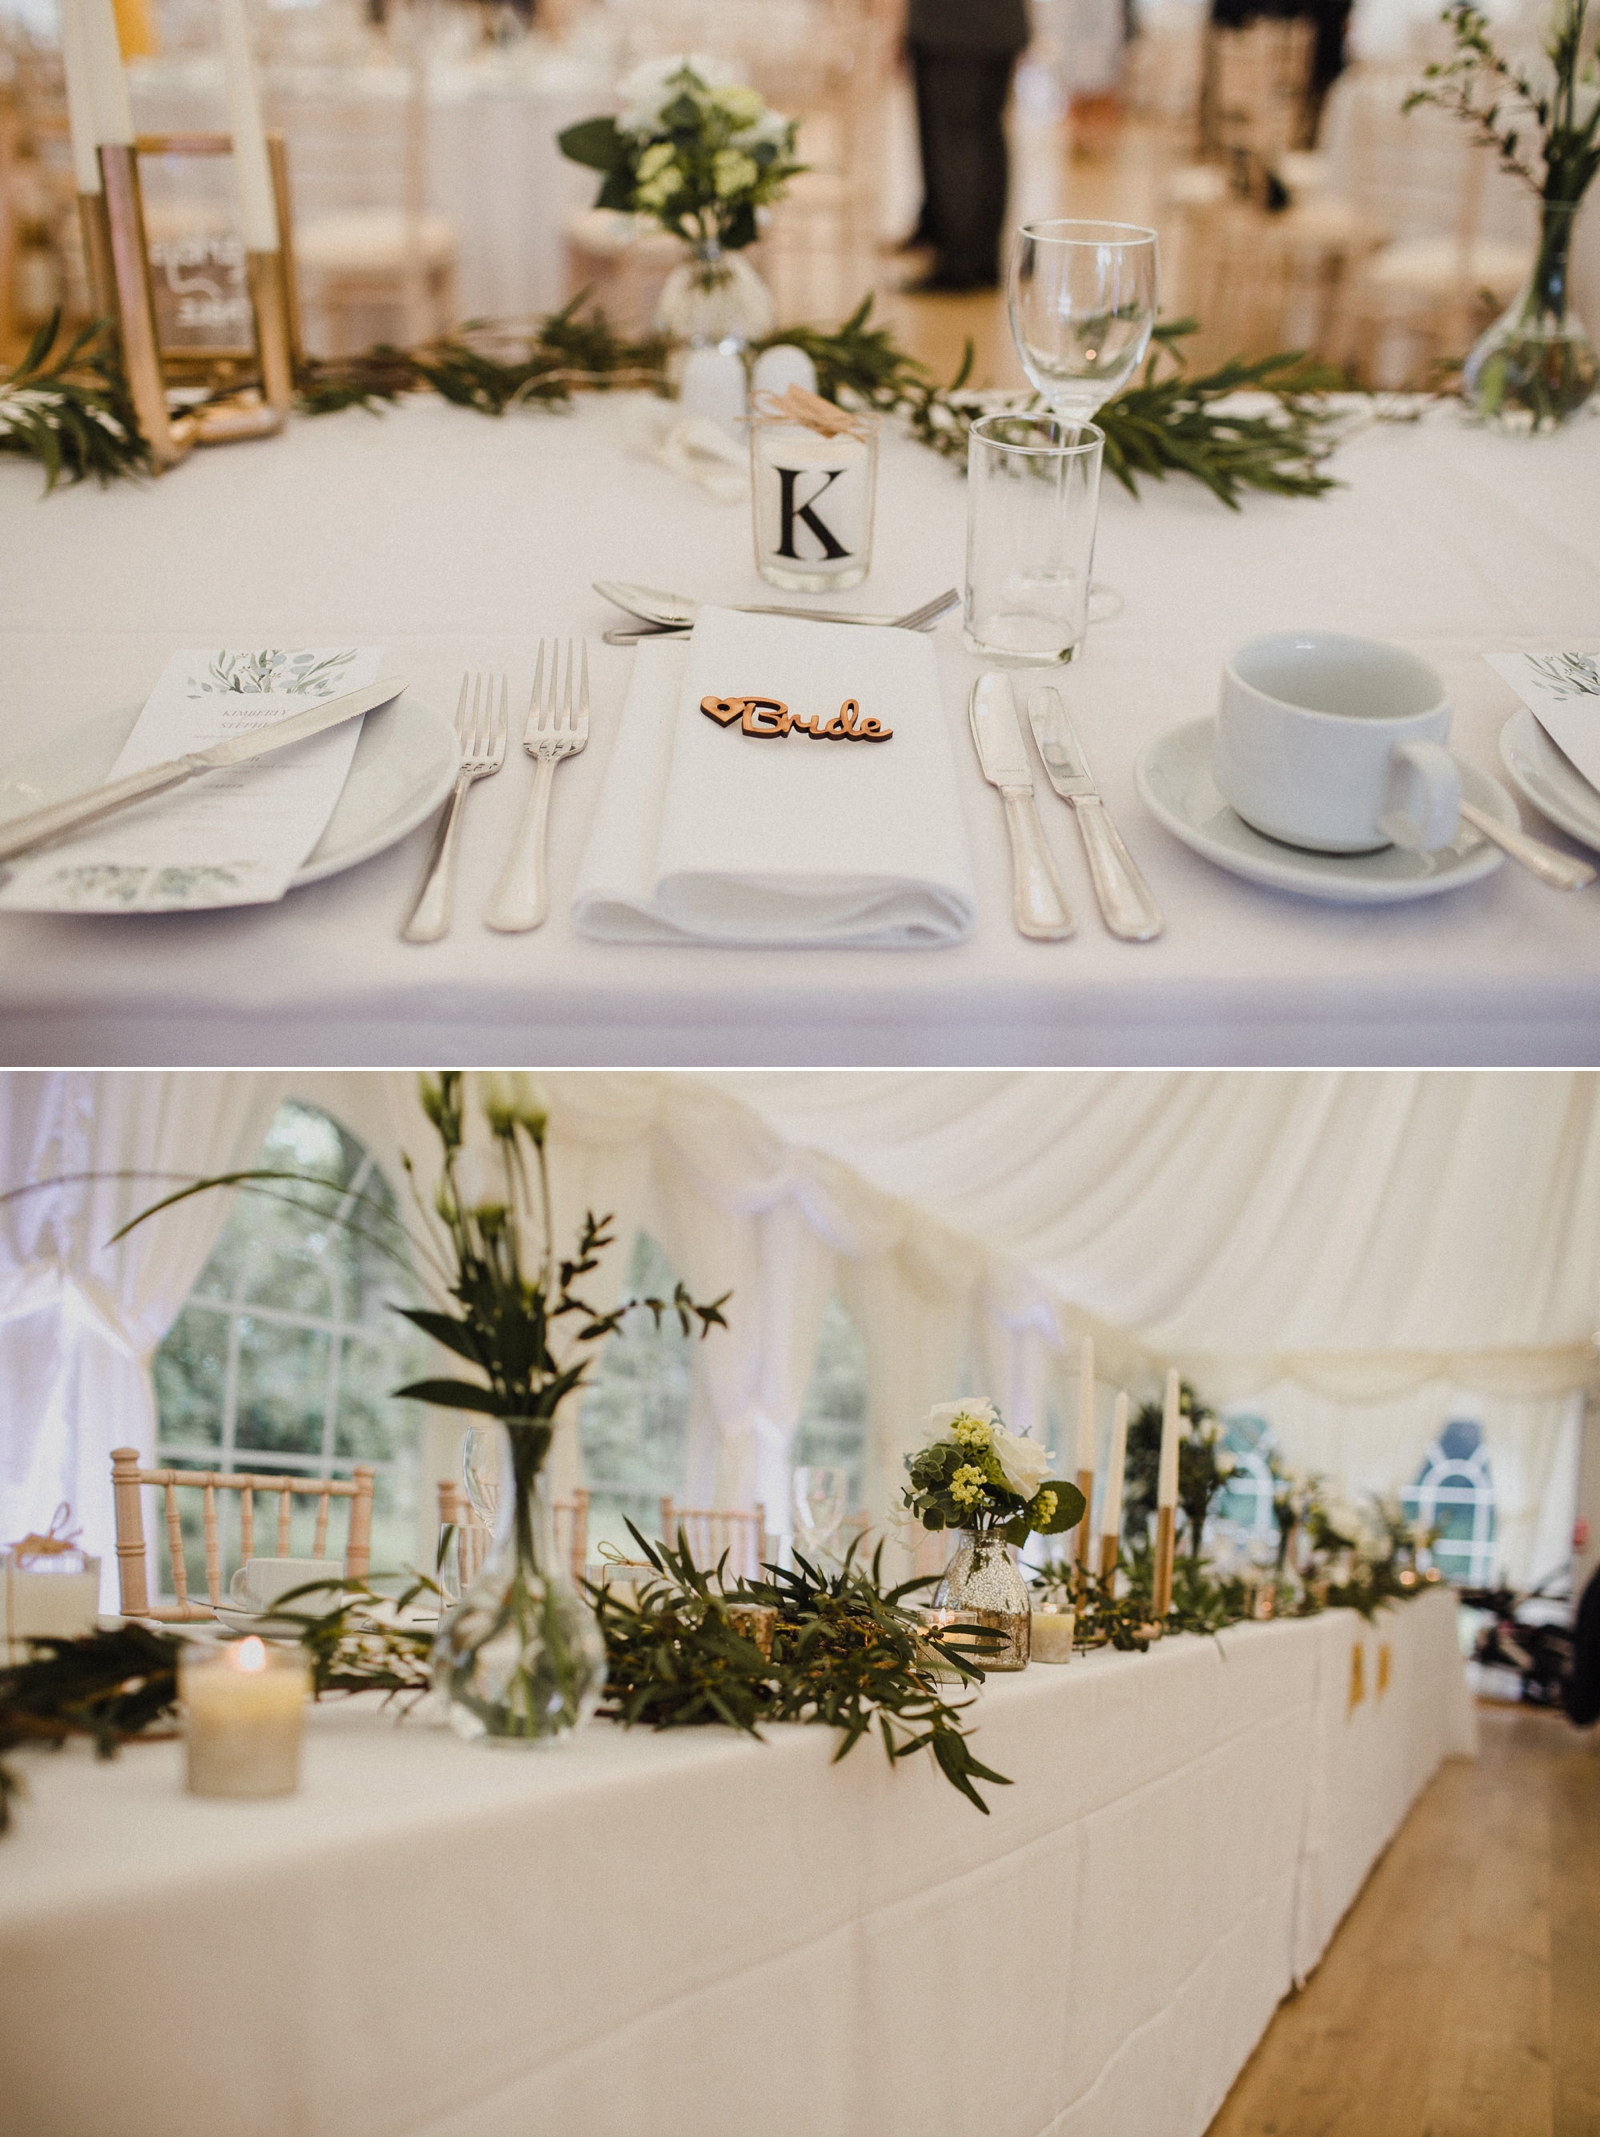 Boswell's Coach House Cumnock - Rustic Romantic wedding-67.jpg